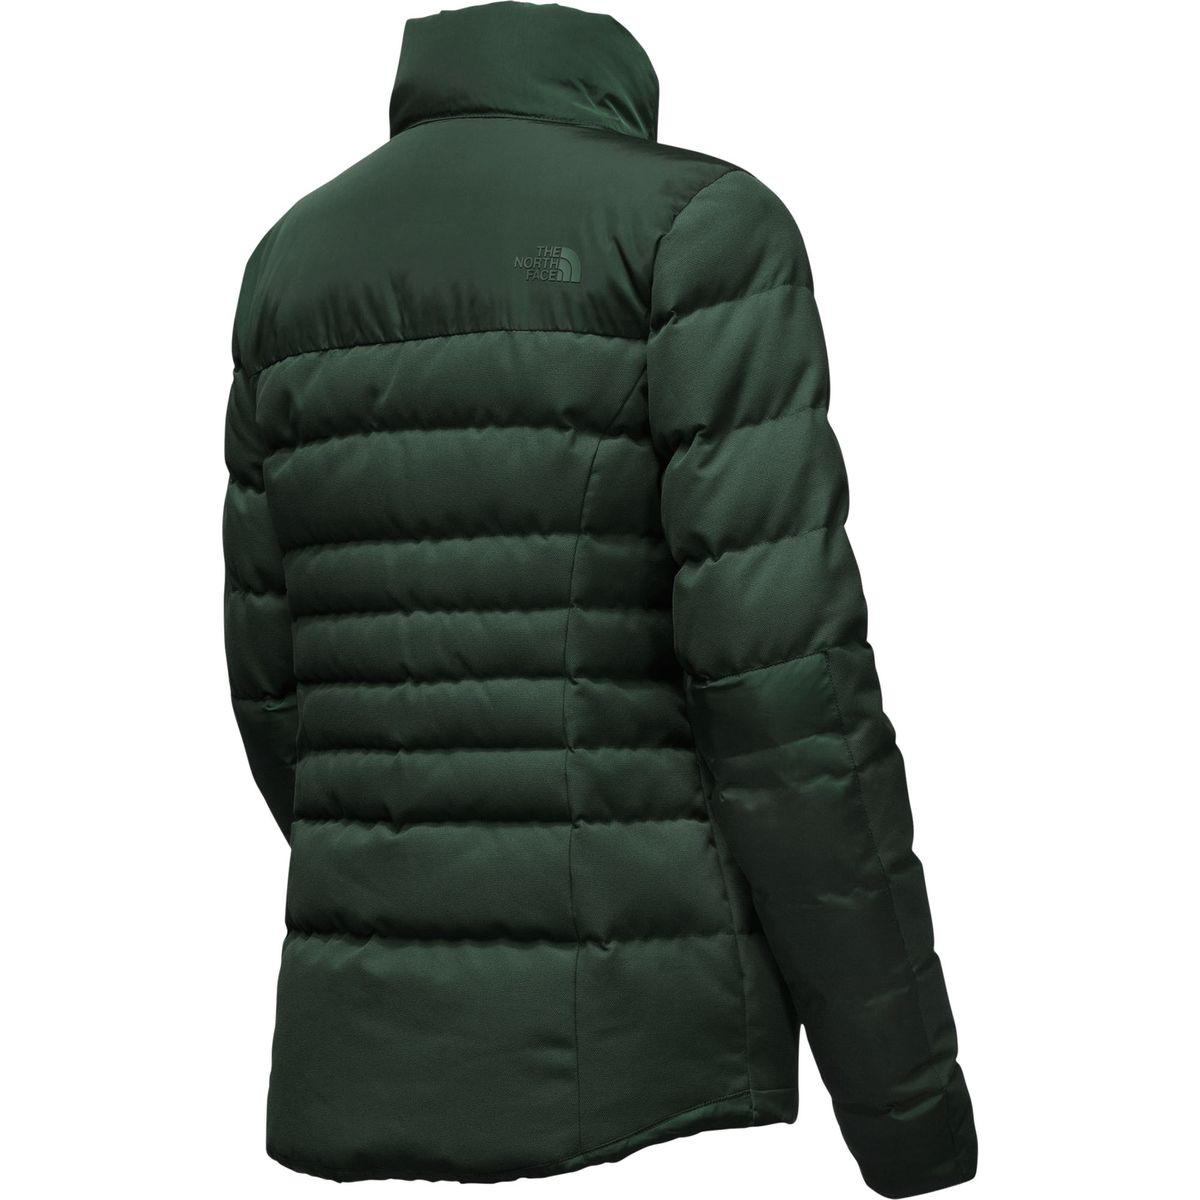 95086673ad06 ... reduced lyst the north face denali down jacket in green 4026e 3b9ef